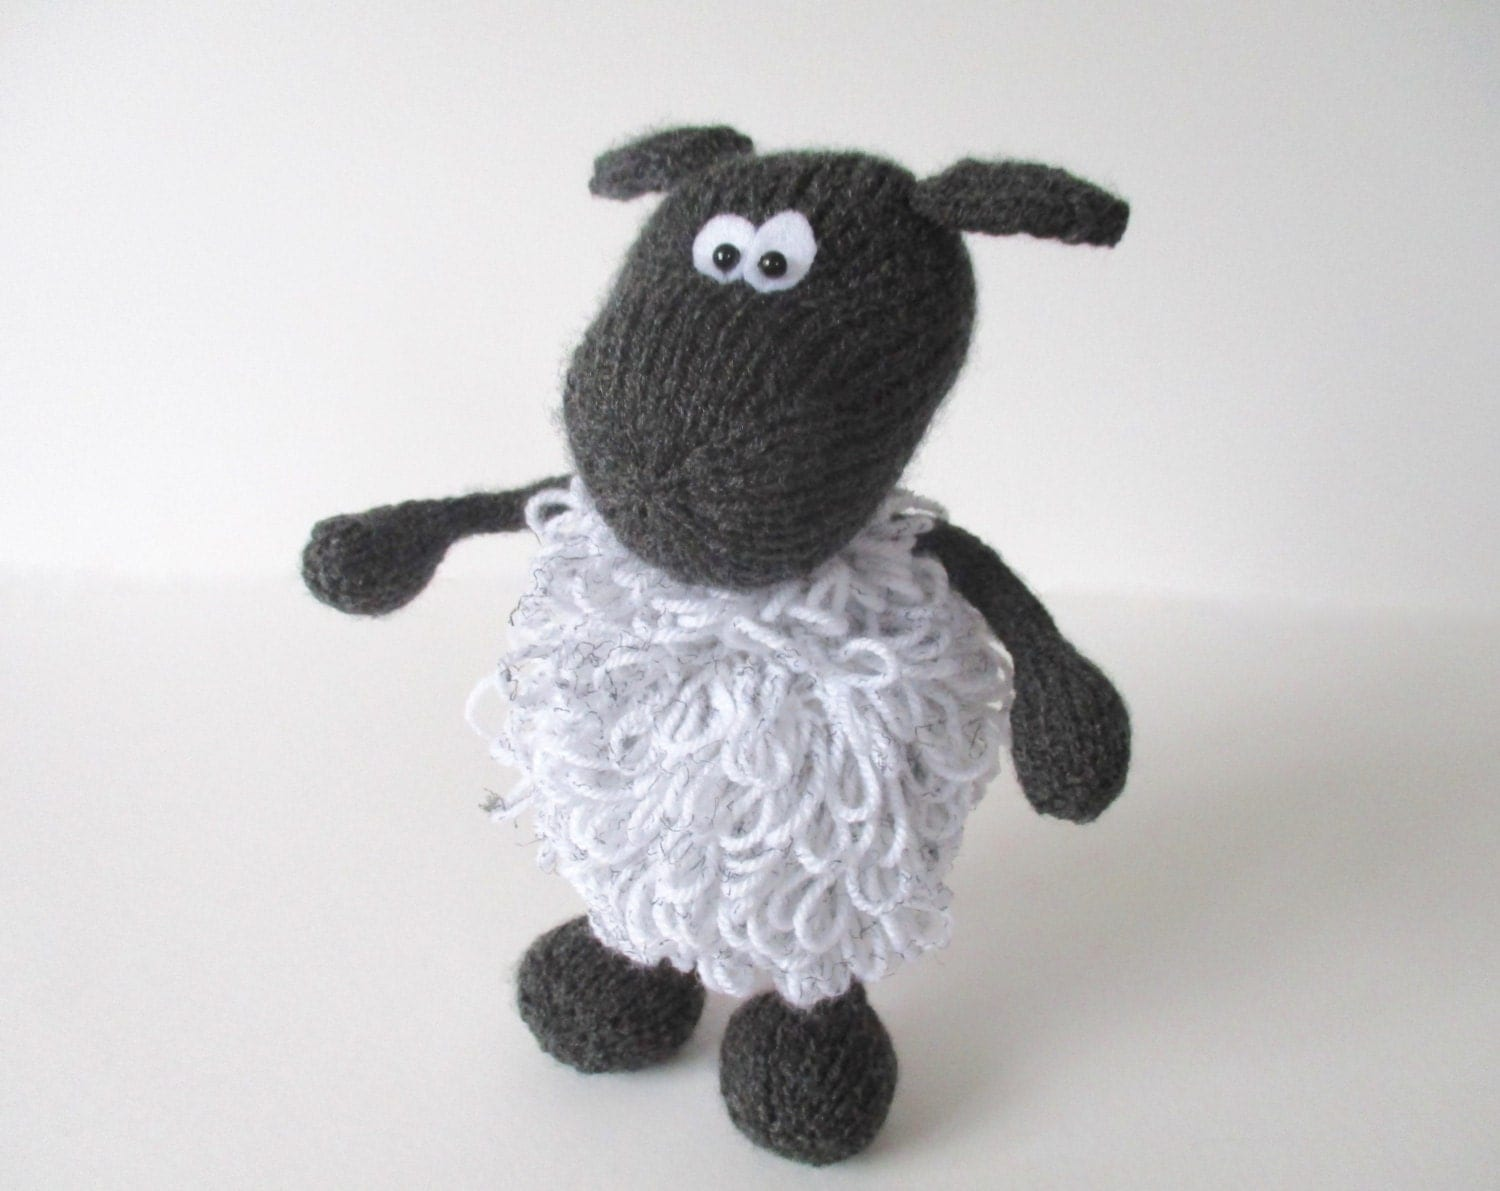 Loopy Knitting Pattern : Loopy the Sheep toy knitting pattern by fluffandfuzz on Etsy